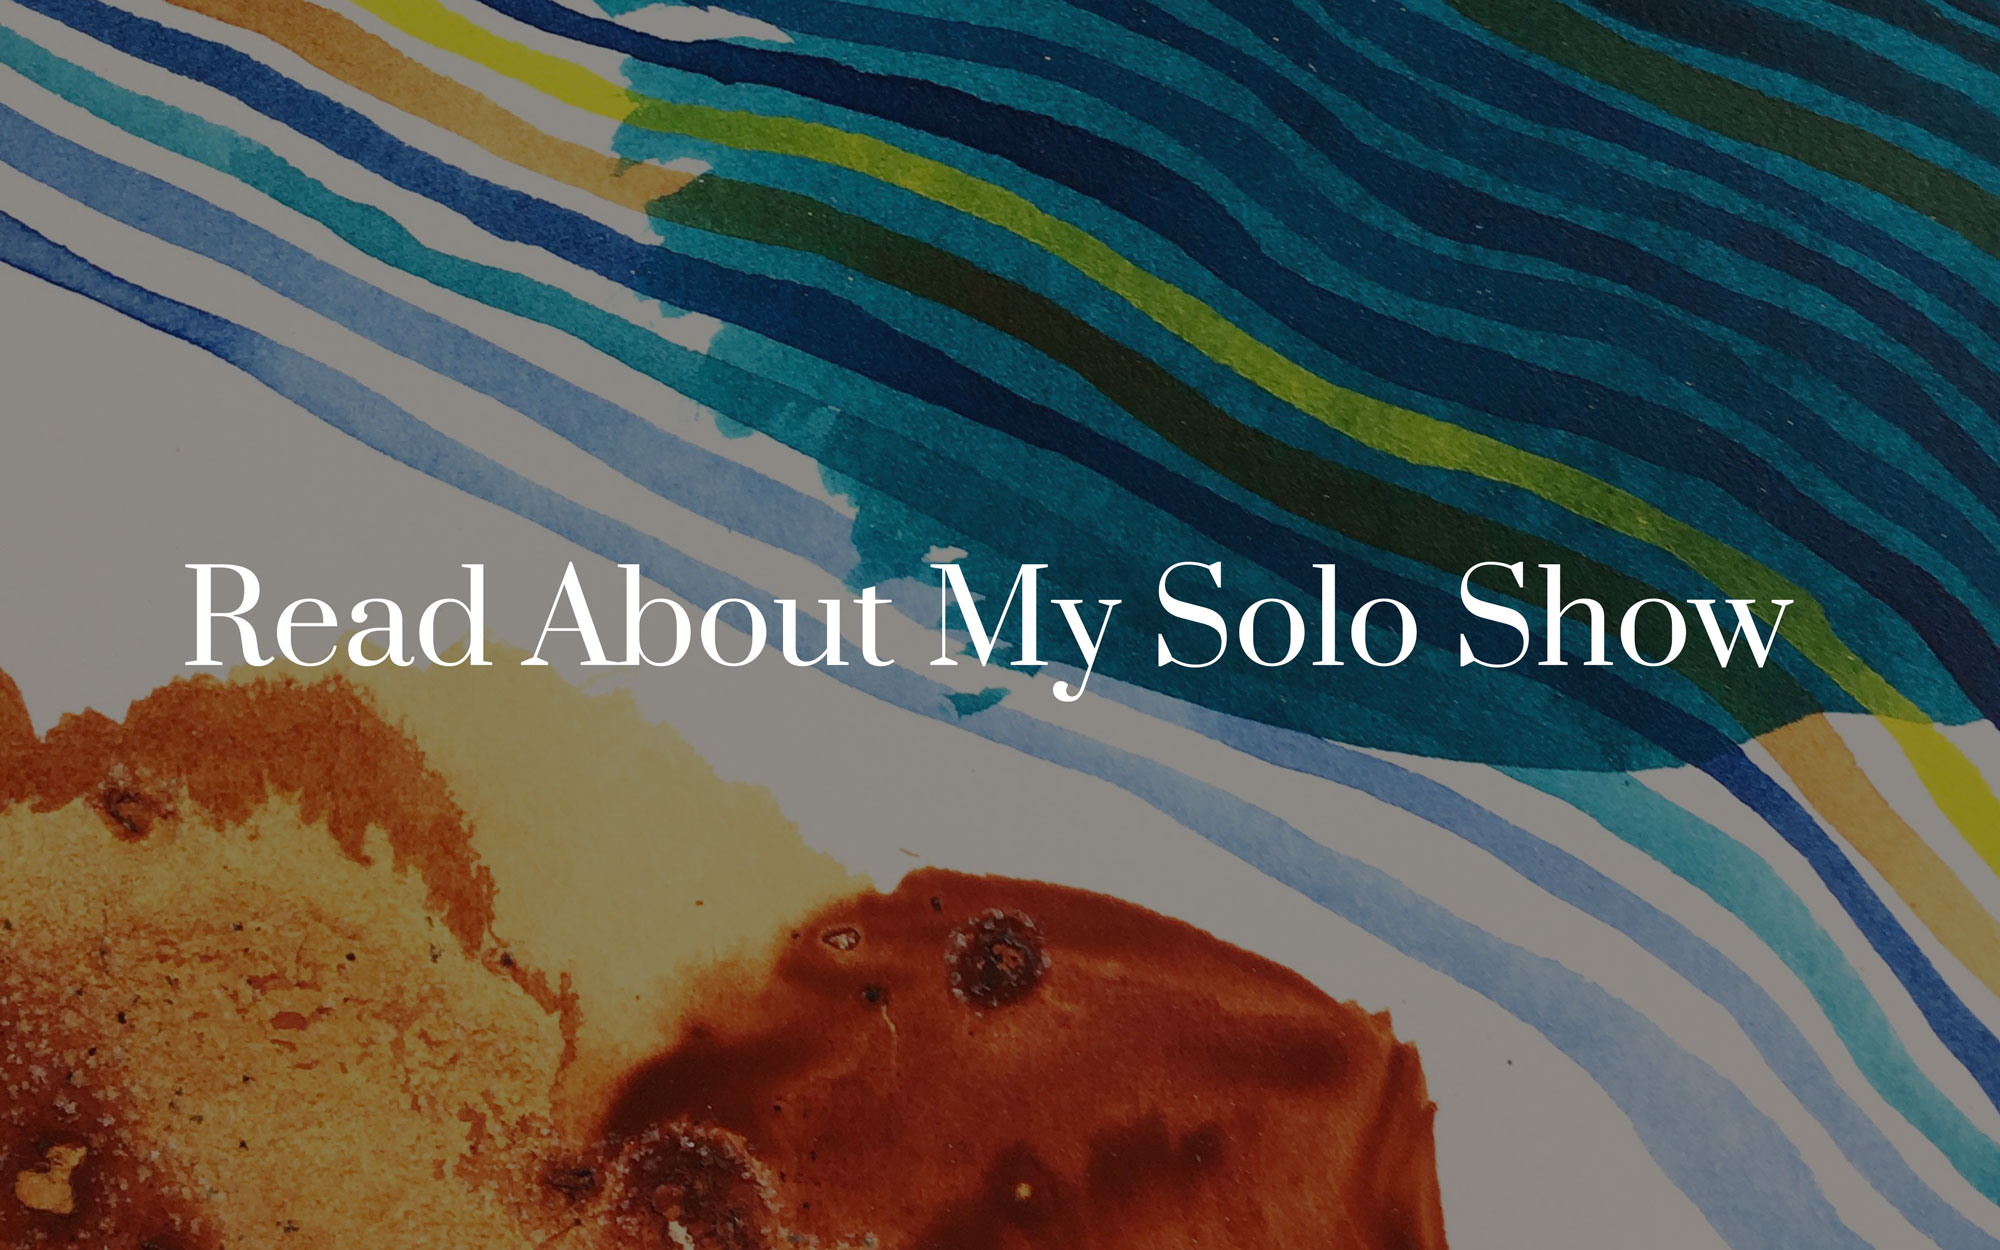 All about my solo art exhibition